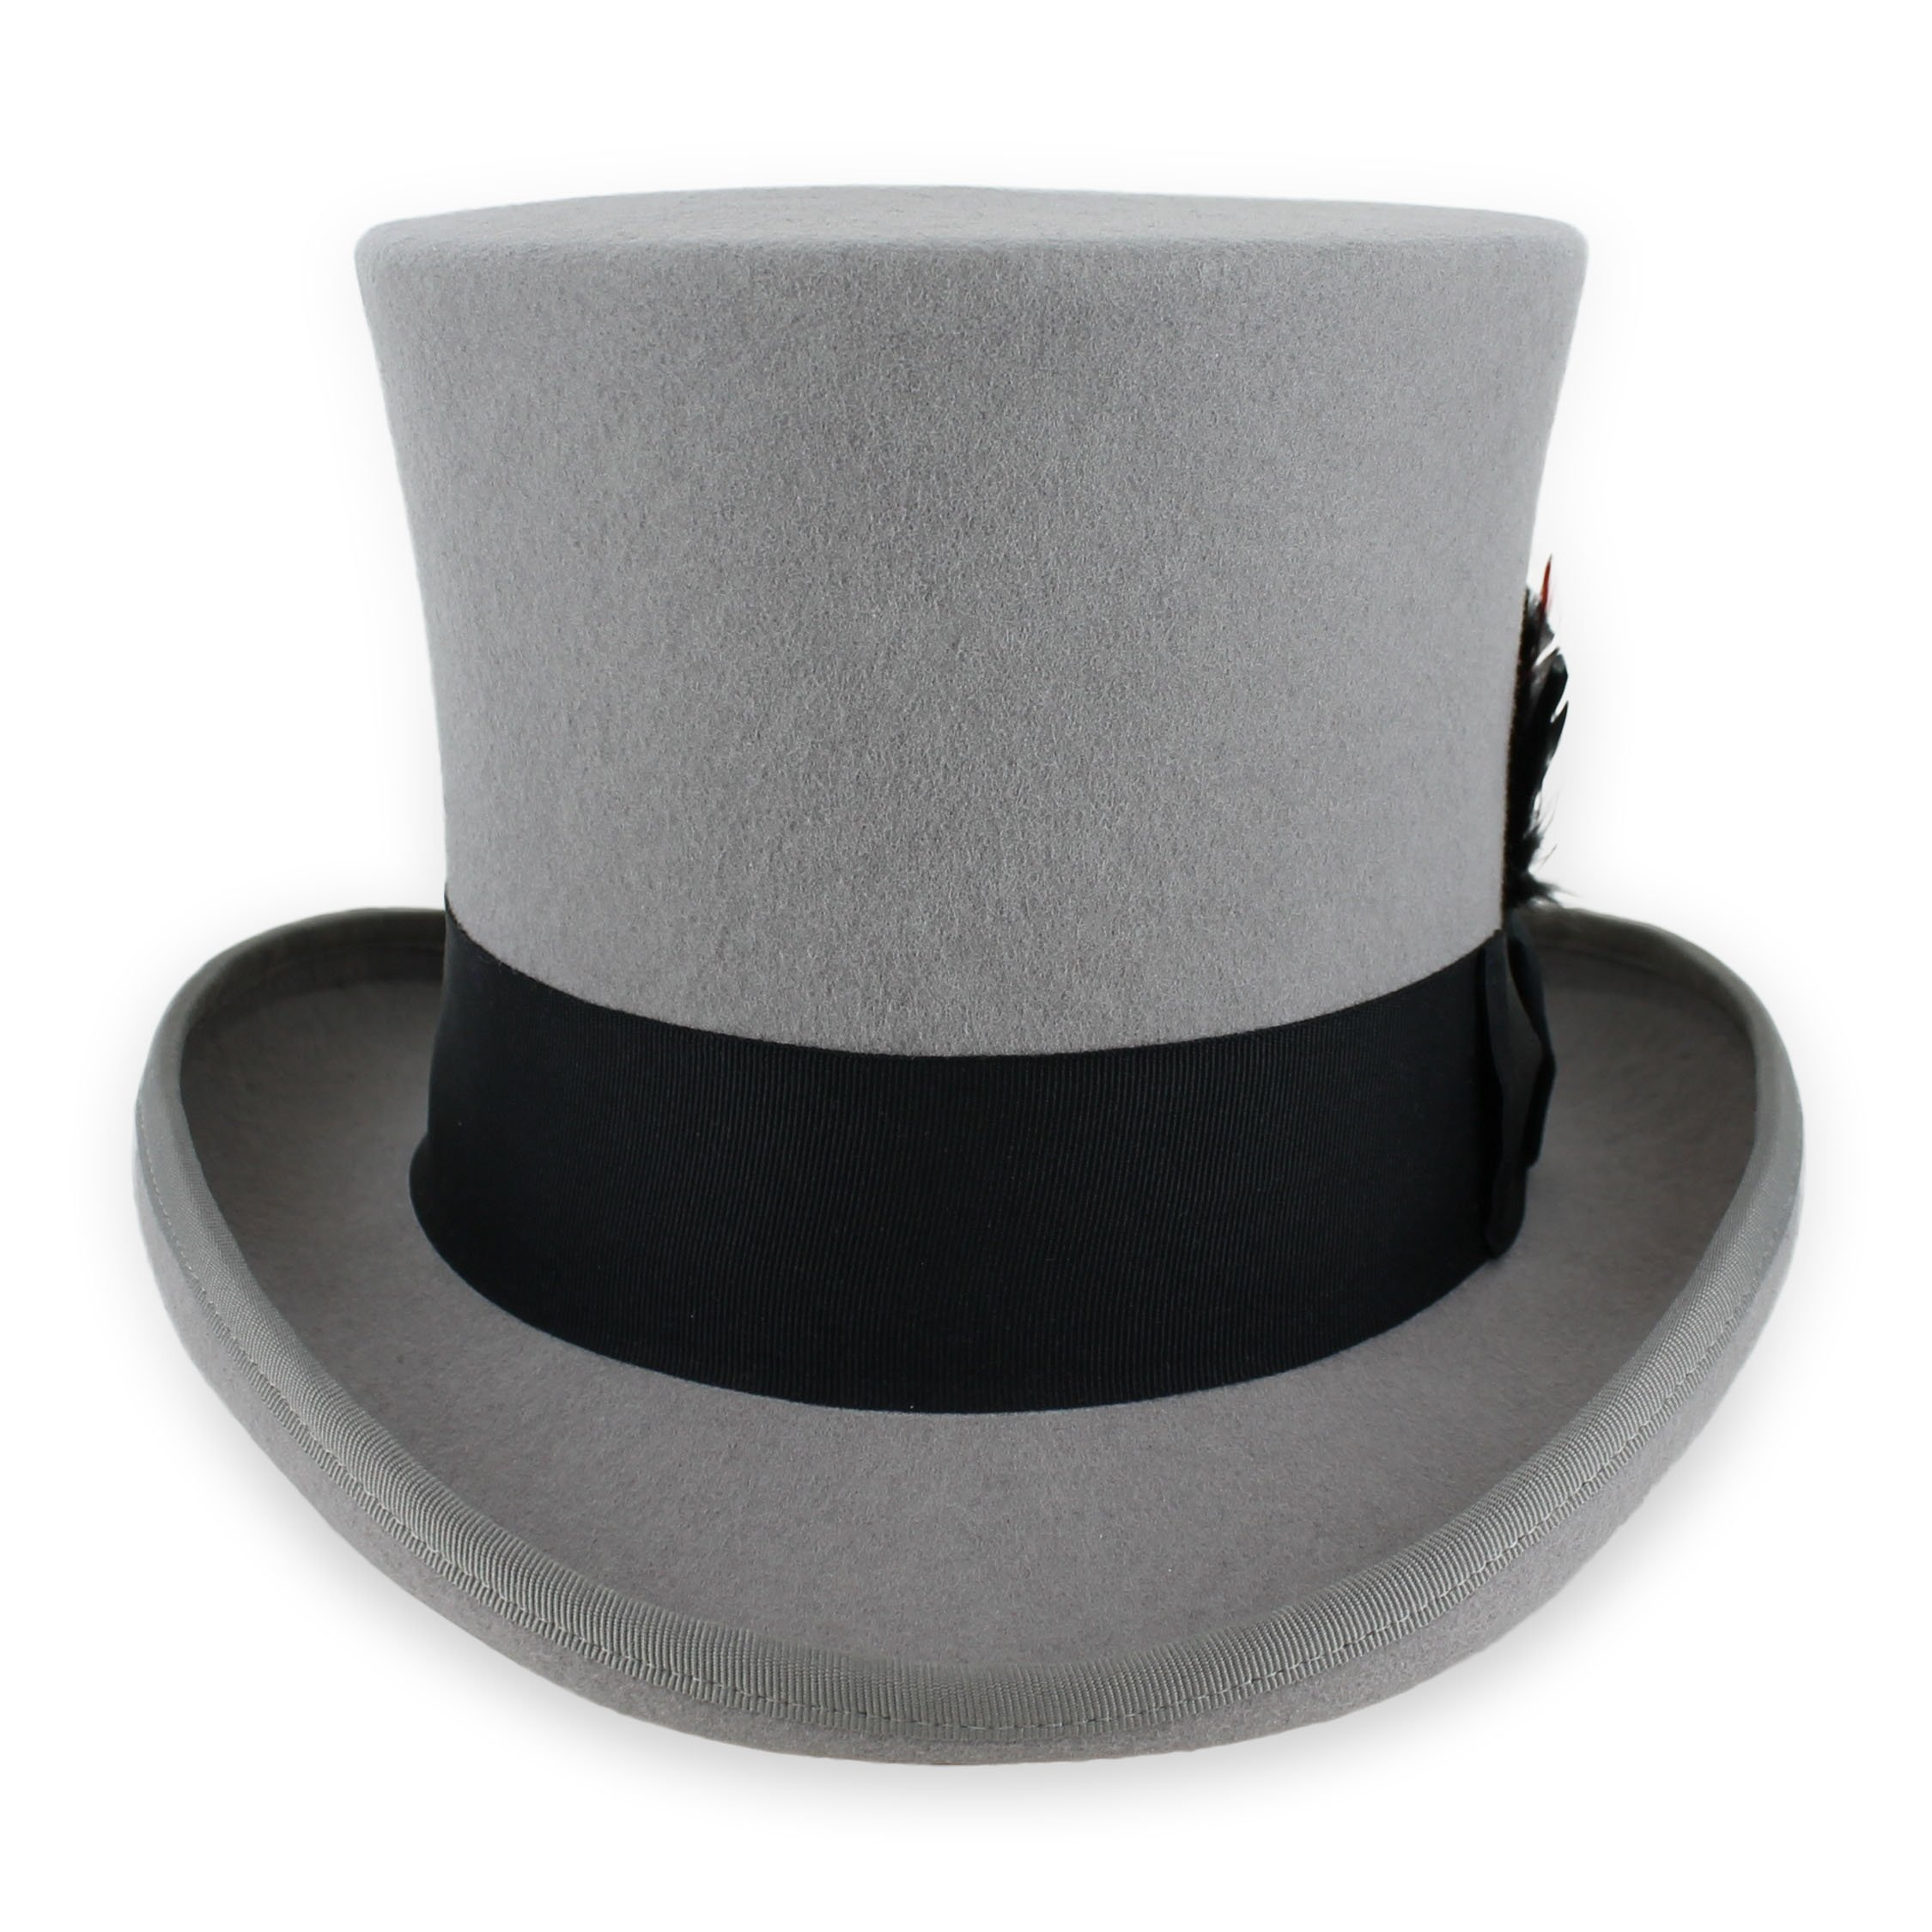 079c185e Belfry Top Hat Theater Quality 100% Wool in Black Grey or Pearl product  image